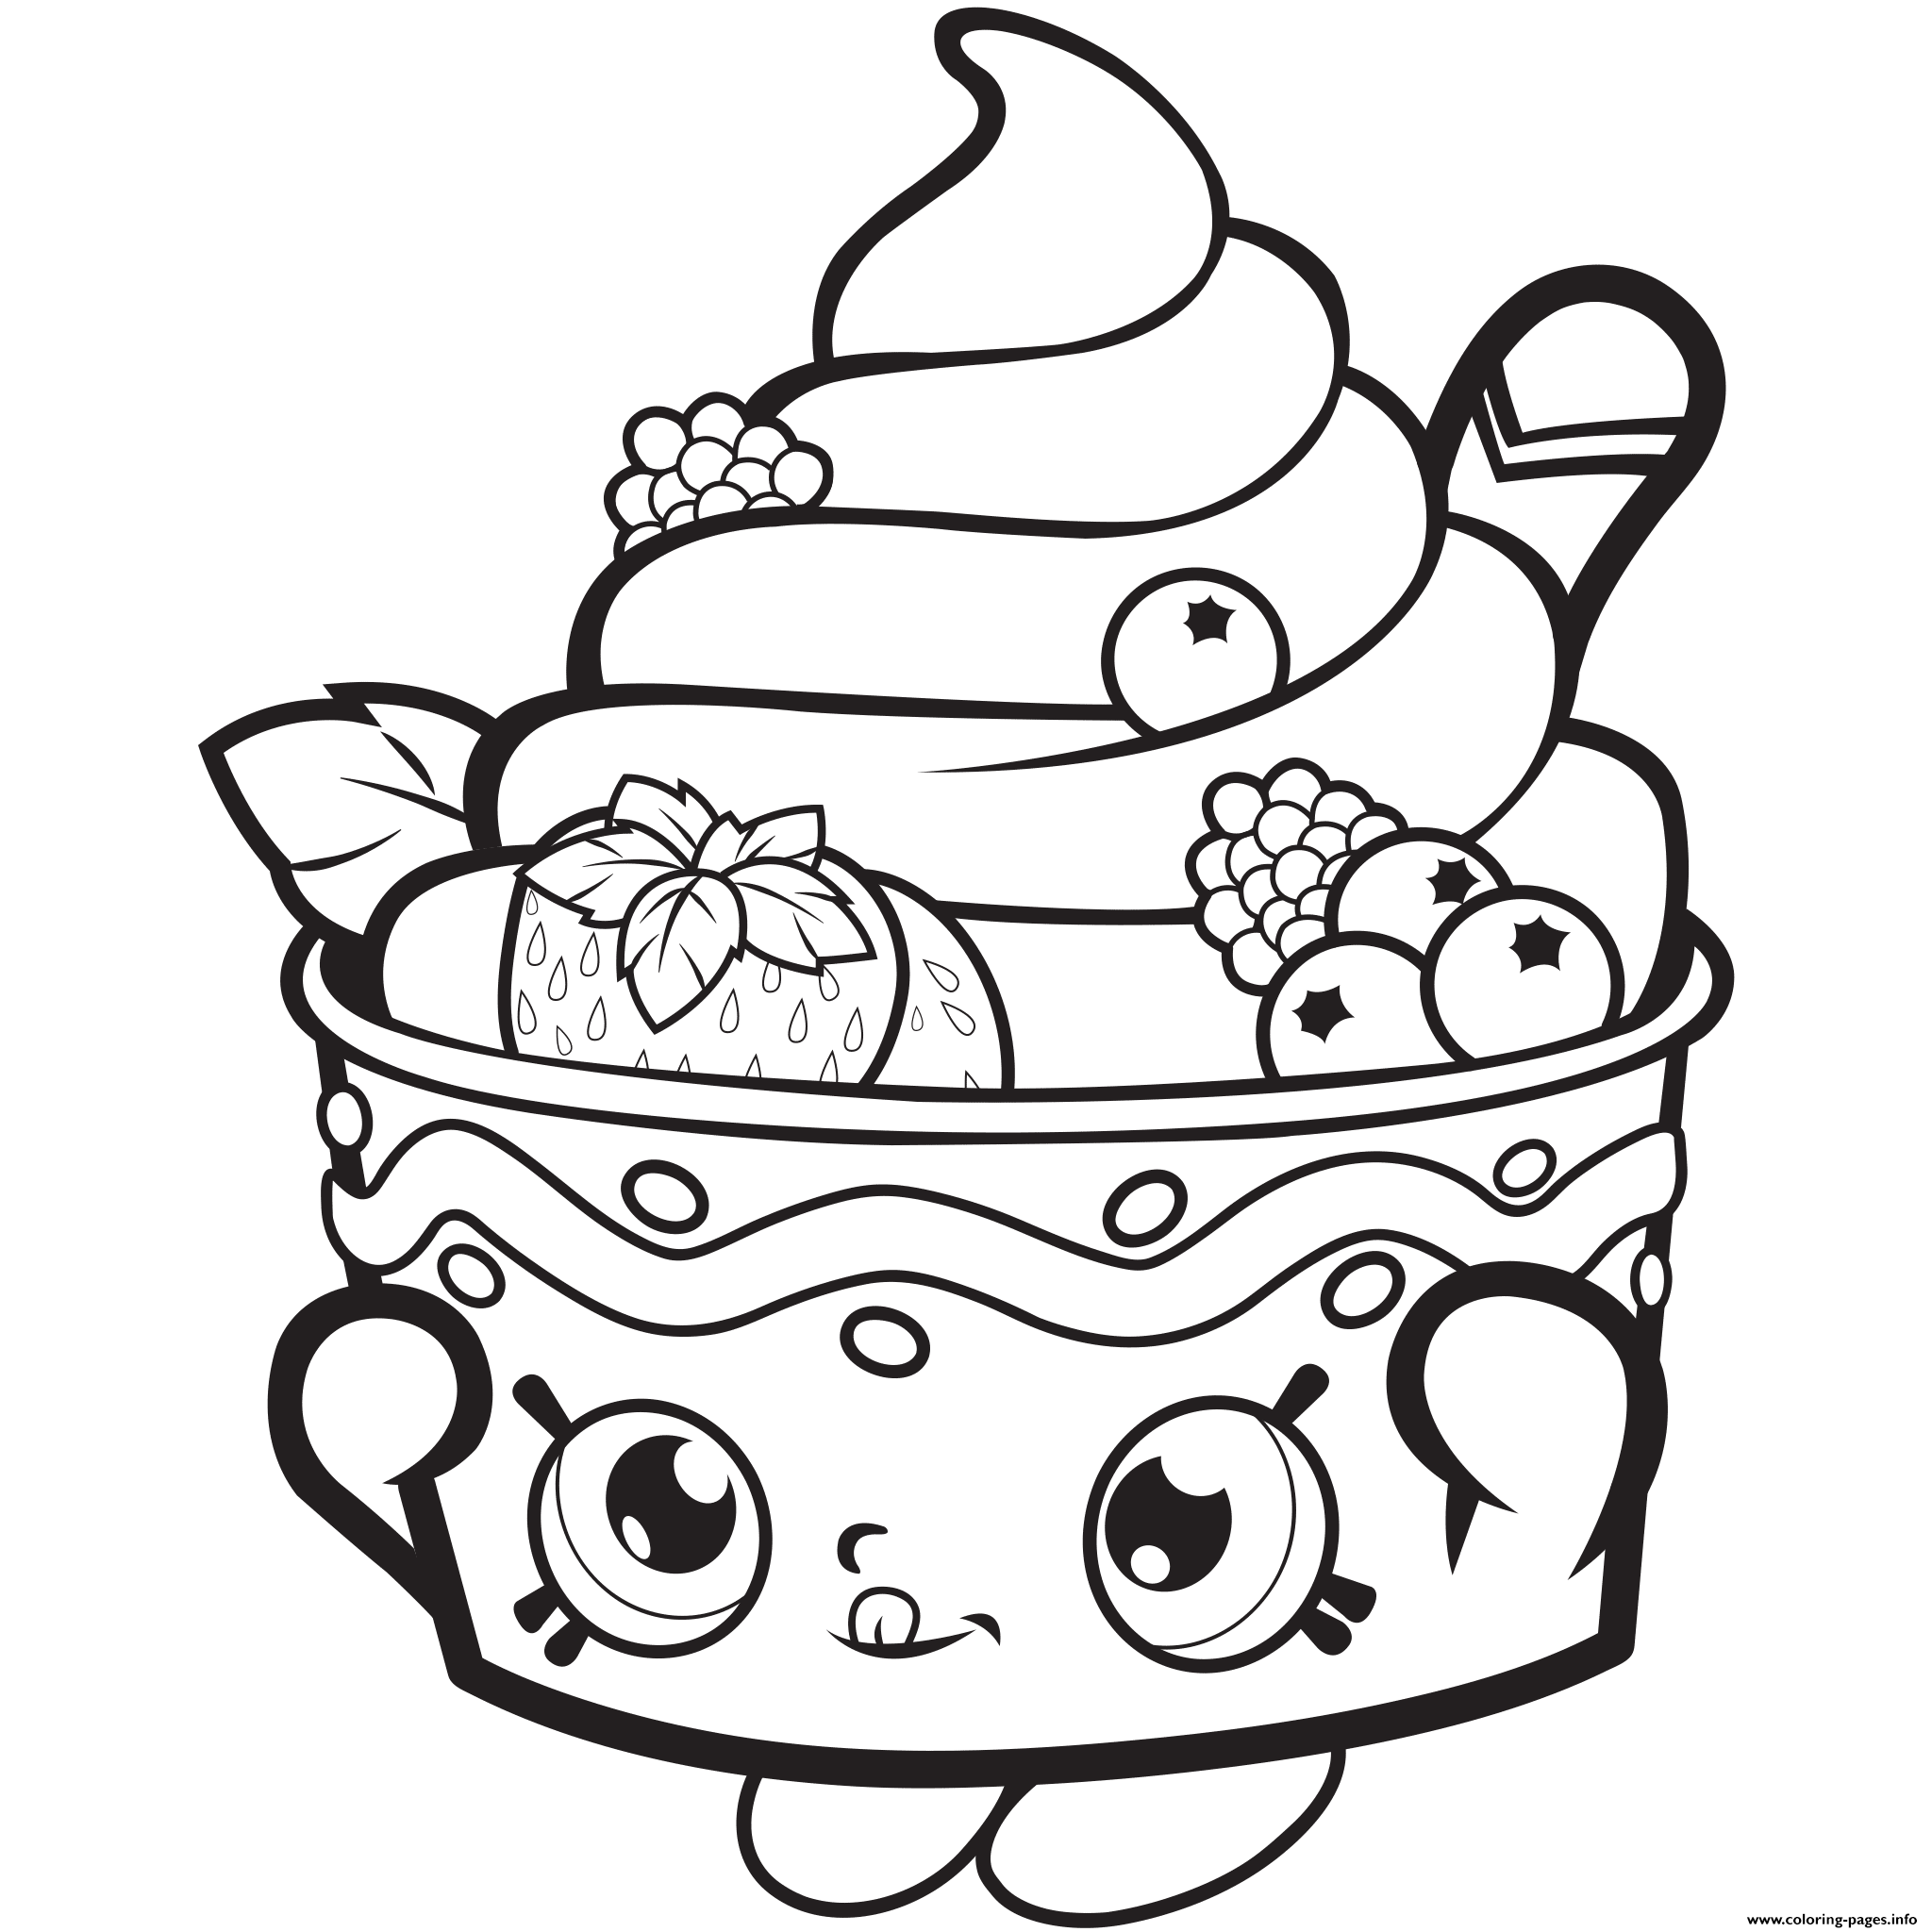 Shopkins color sheets - Shopkins Coloring Pages To Printx Shopkins Coloring Pages Free Cute Ketchup Shopkins Season 1 Coloring